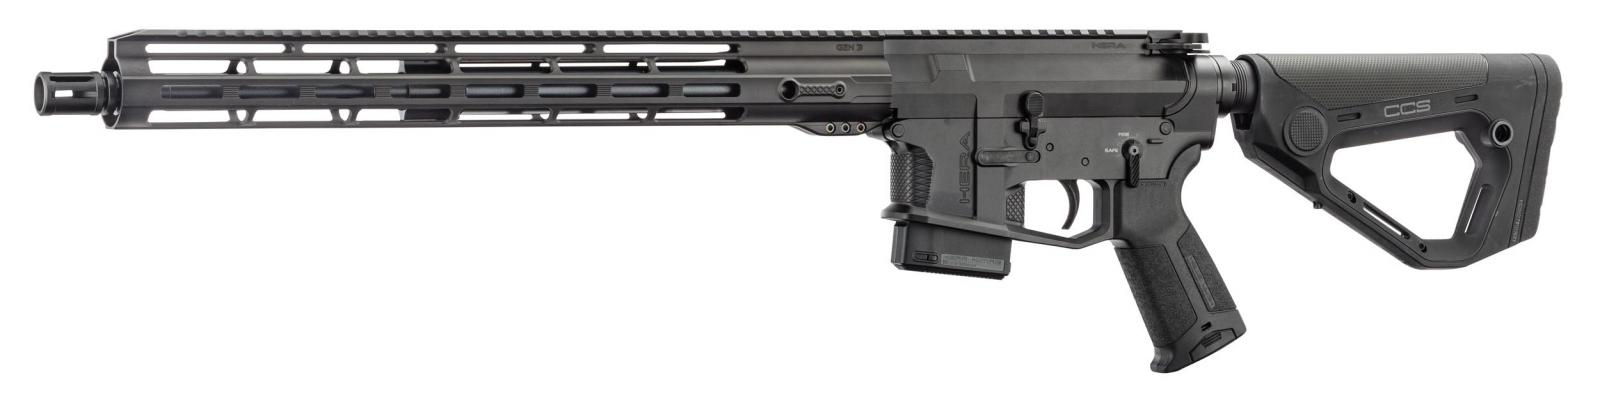 Carabine AR 15 HERA ARMS 15TH LS040/US040